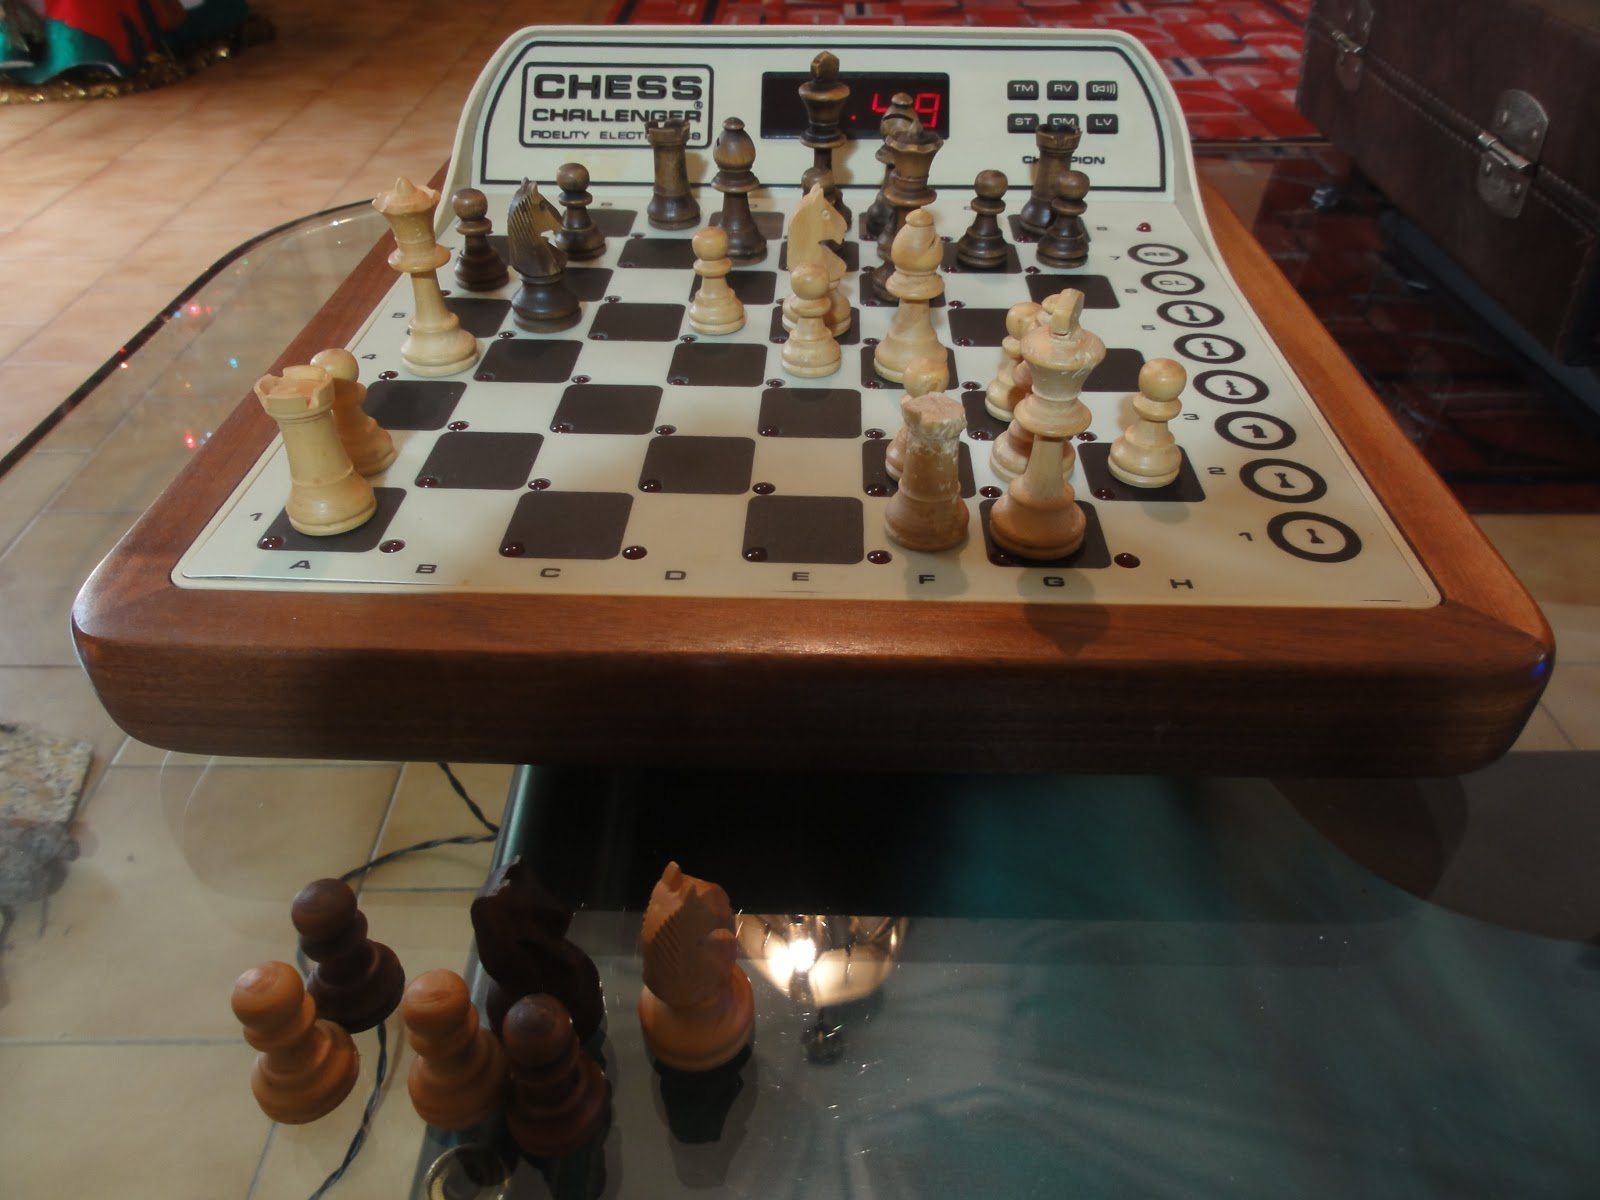 Milady and my dedicated chess computers: Chess Challenger